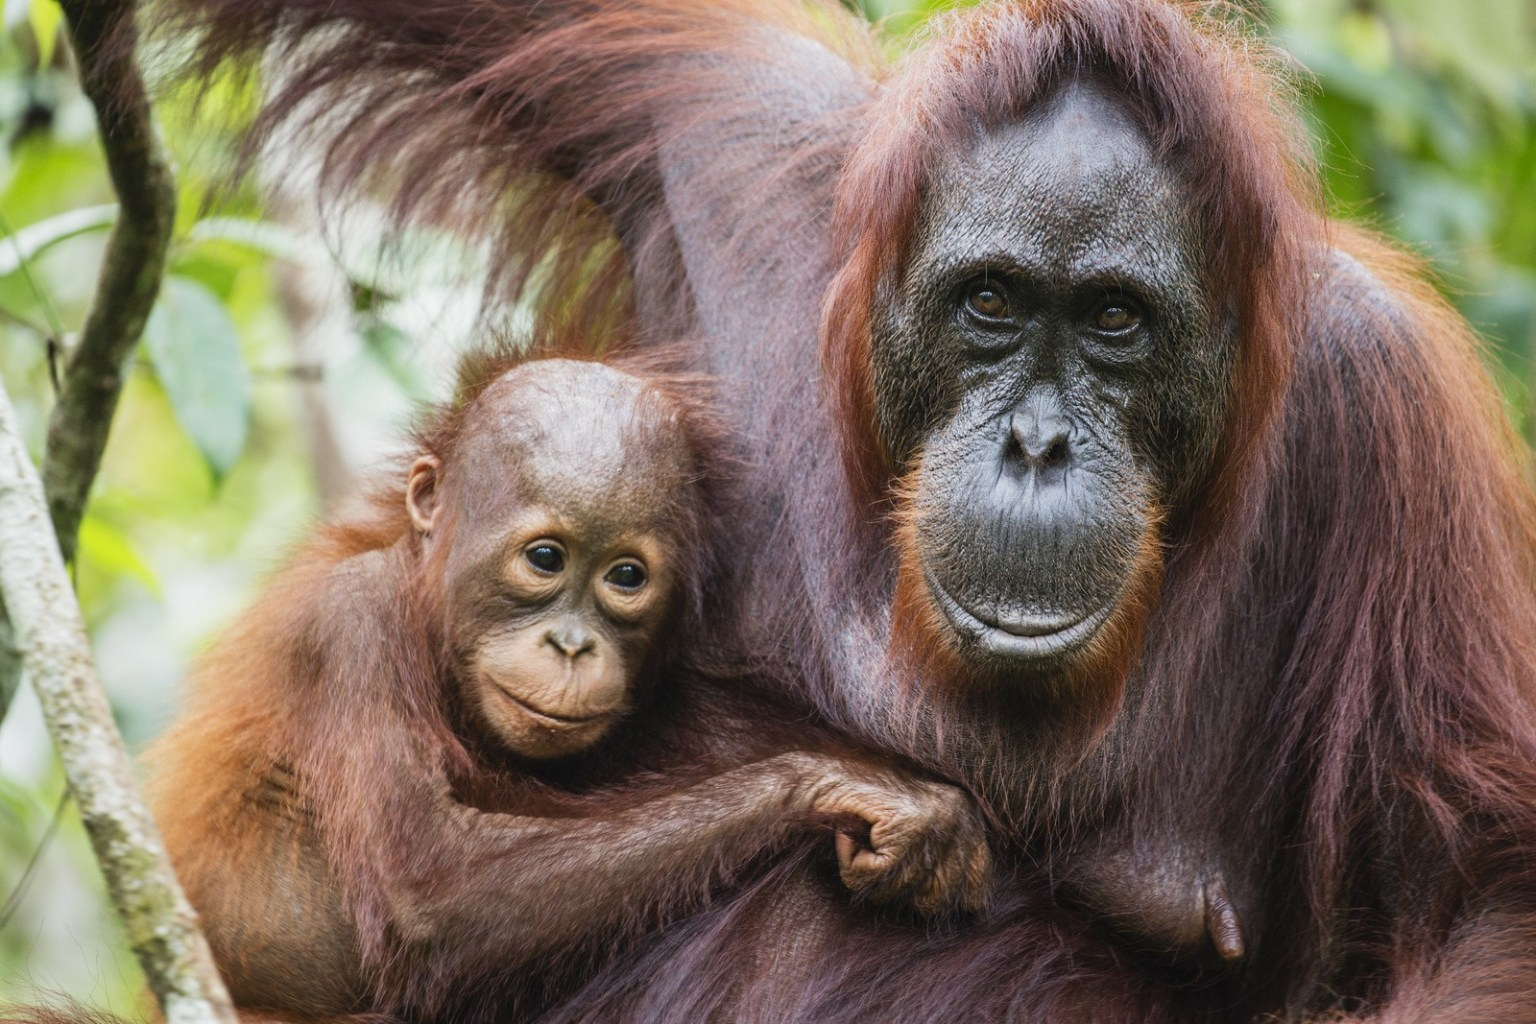 Image: A close-up portrait of orangutans, female (Pongo pymaeus) and her young together, Tanjung Puting National Park, Central Kalimantan, Borneo, Indonesia